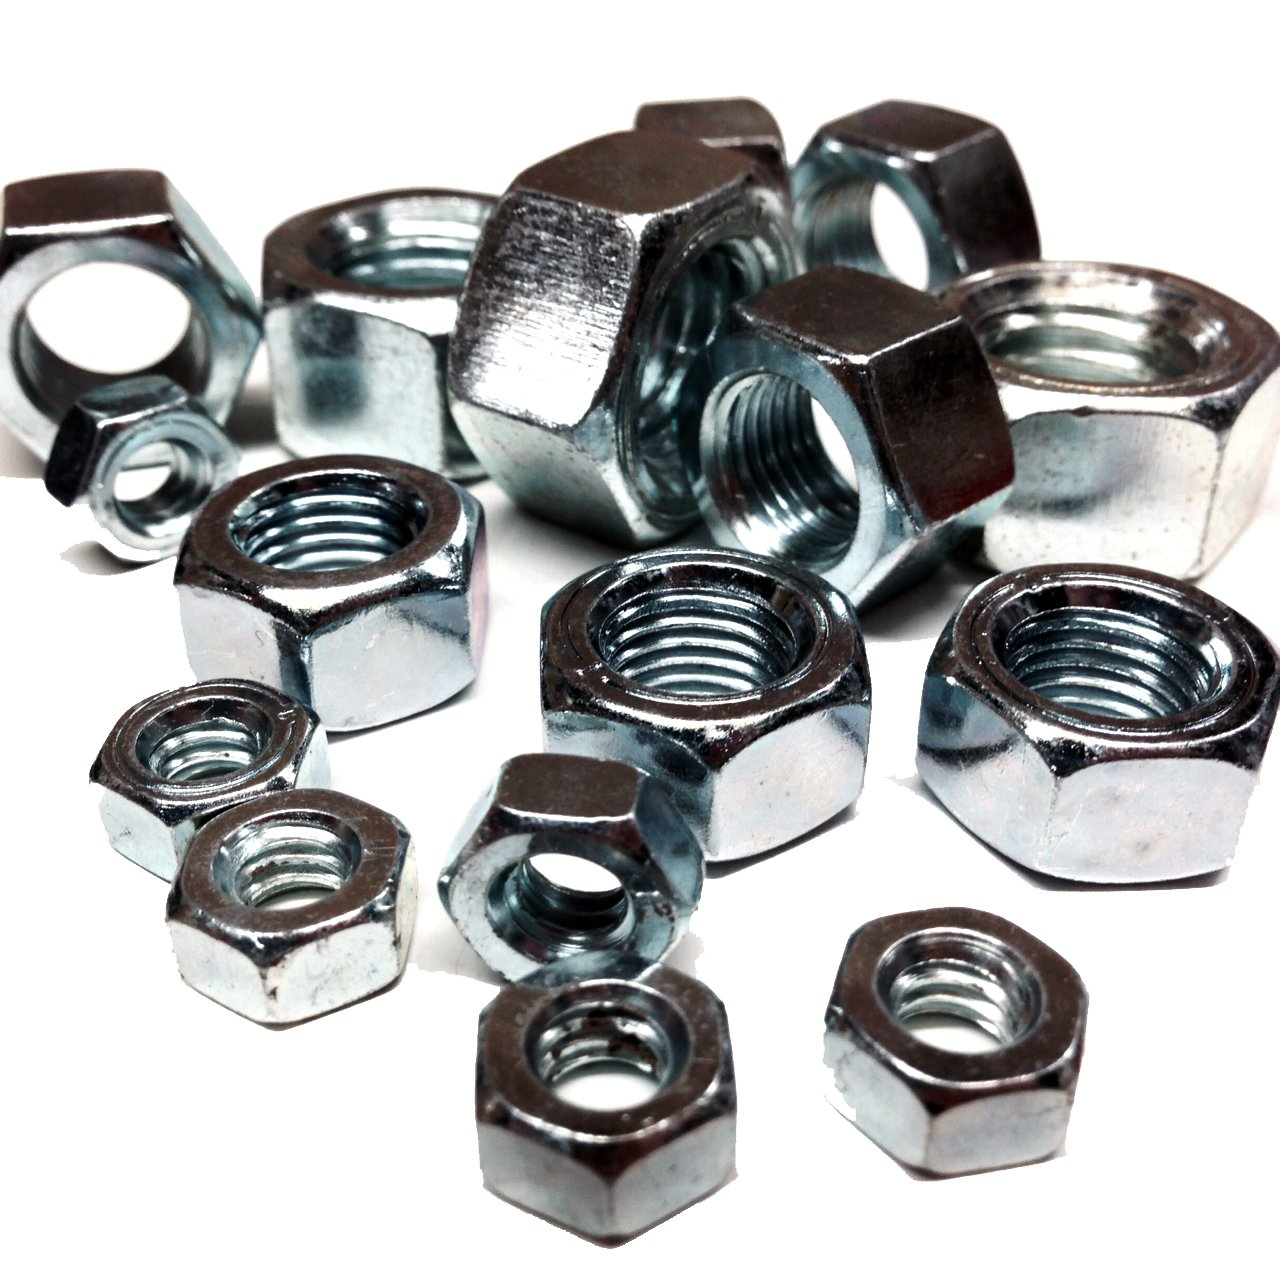 PACK OF 10 x 1/4' UNC ZINC PLATED FULL HEX NUTS Falcon Workshop Supplies Ltd